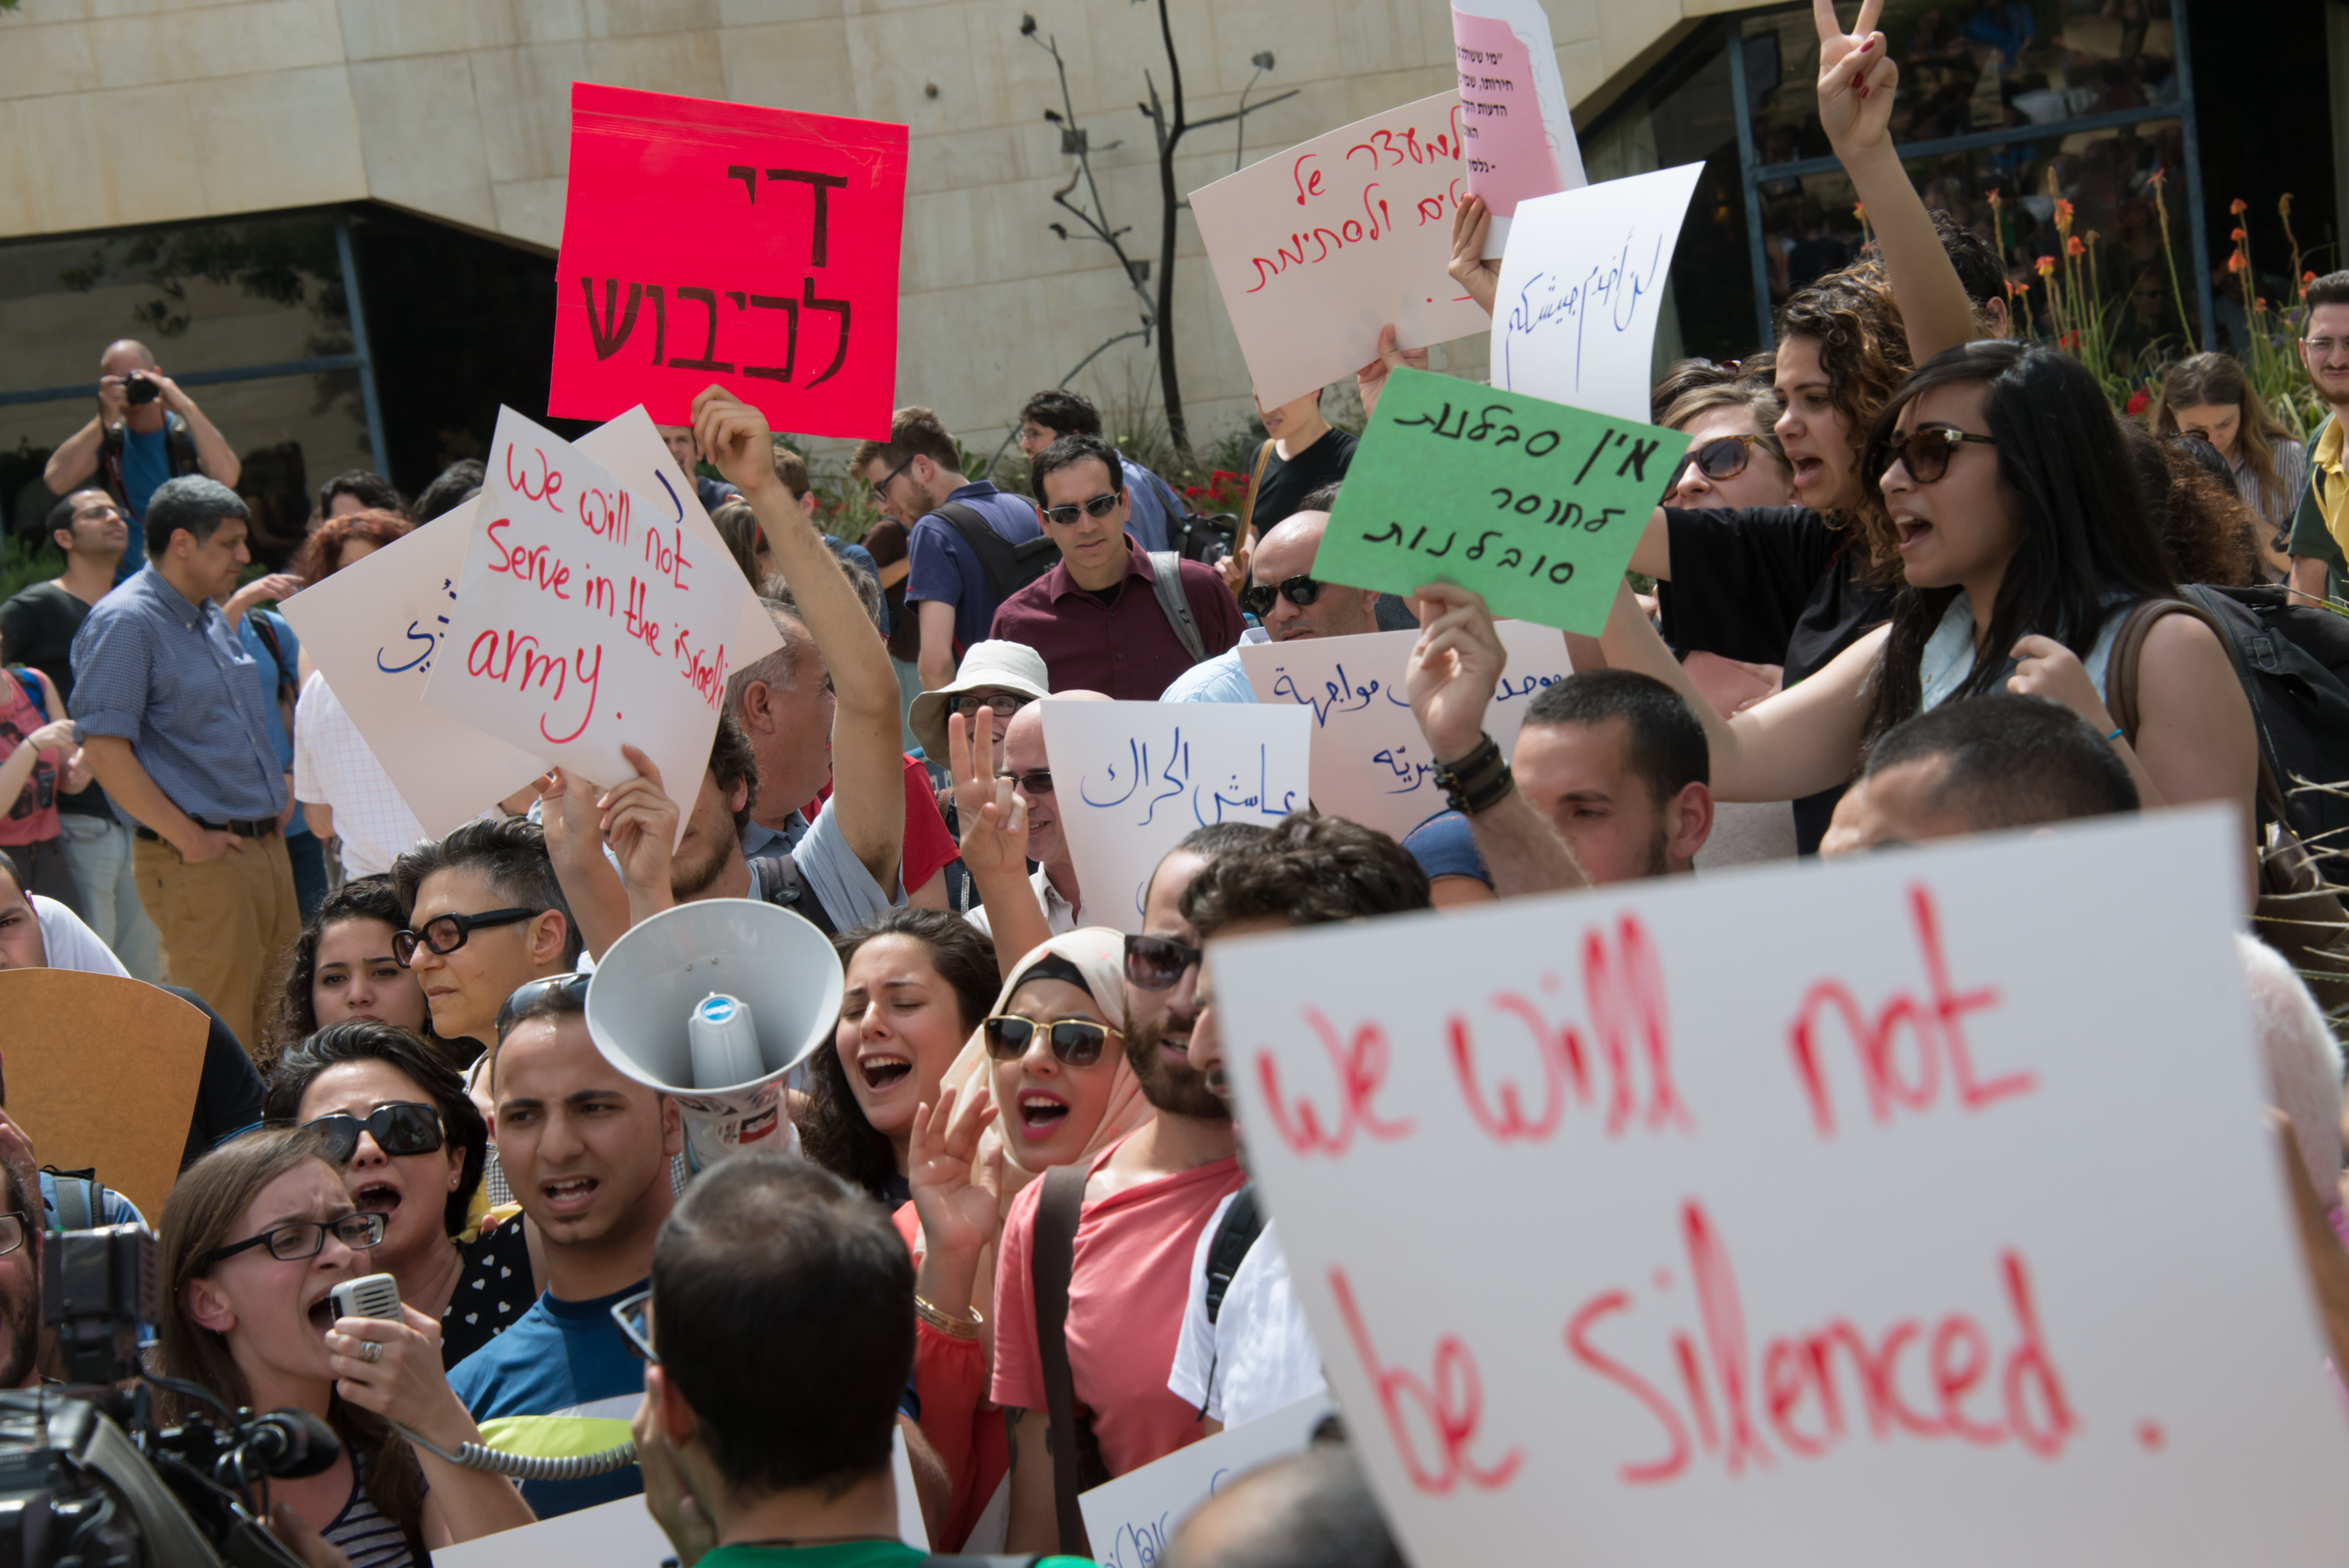 Protest against army service, Hebrew University, East Jerusalem,